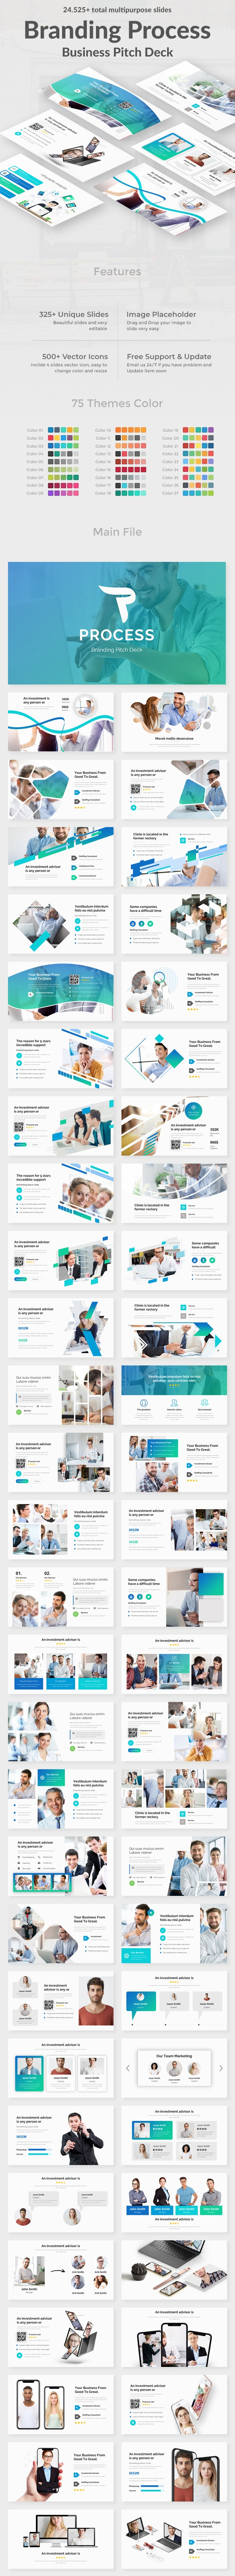 Branding Process Google Slide Pitch Deck Template - Google Slides Presentation Templates